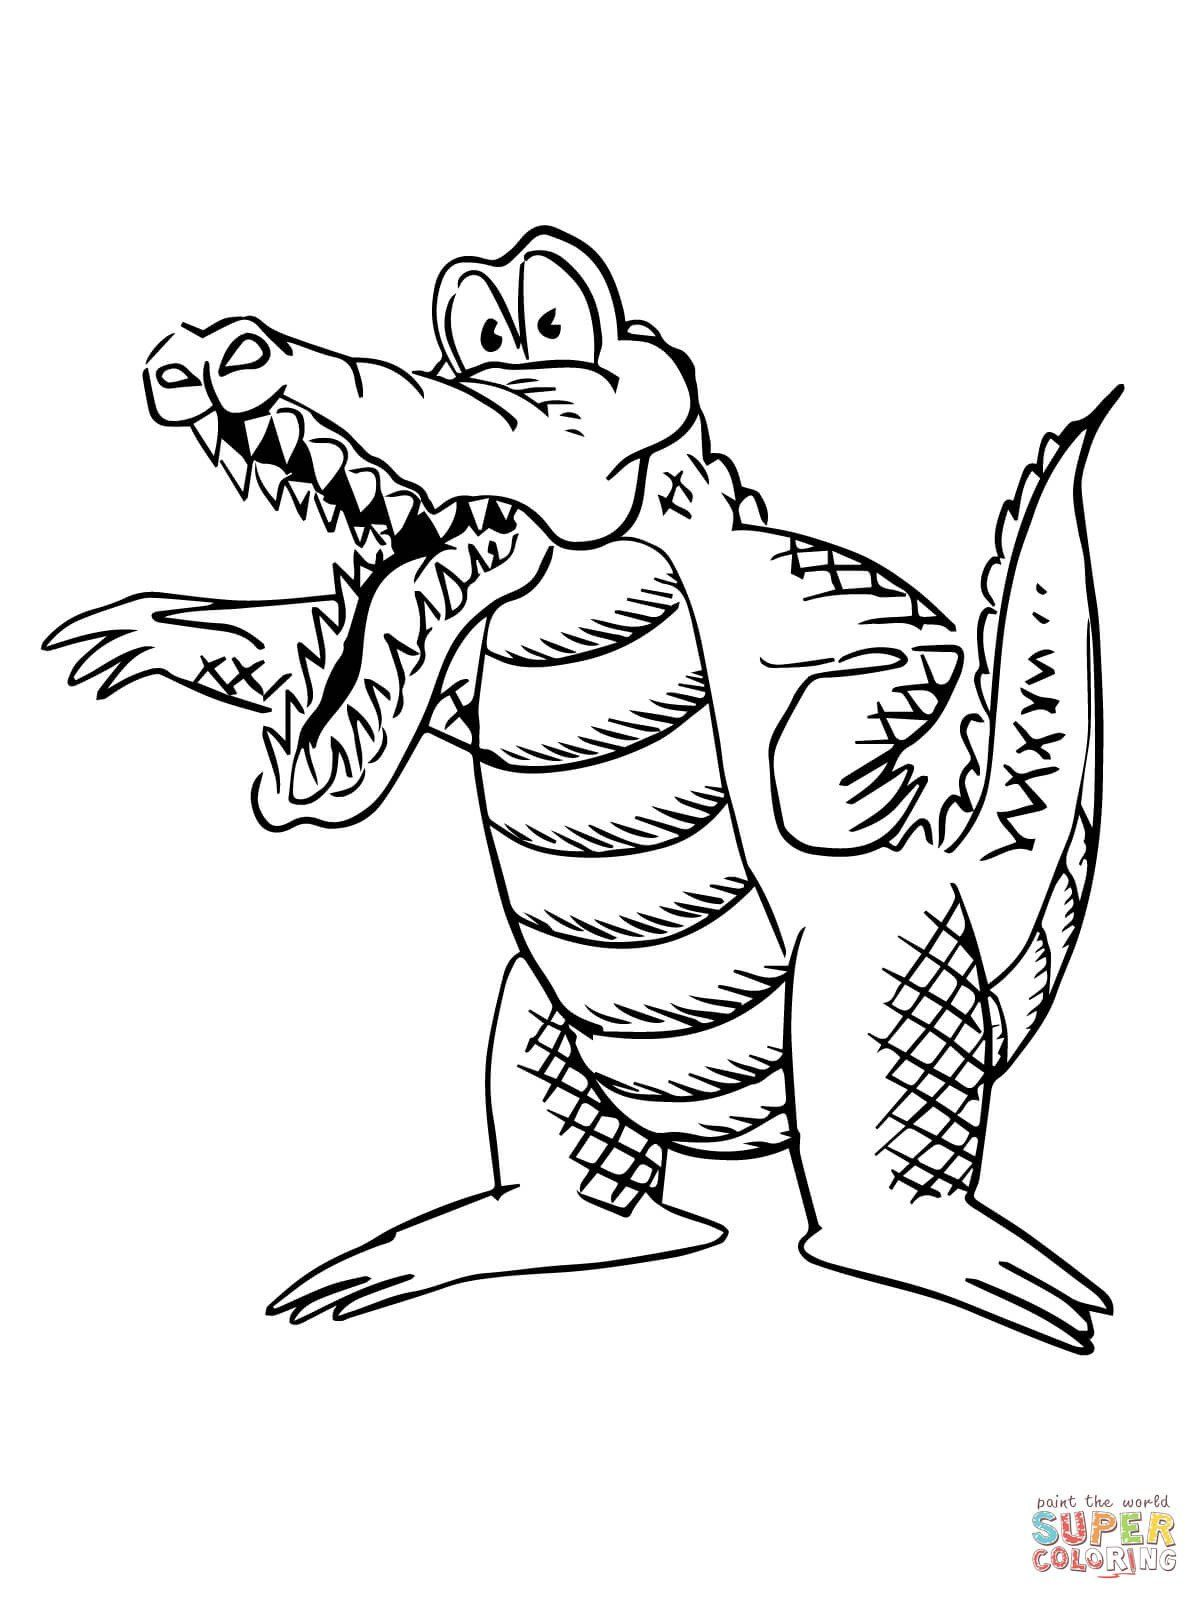 Cute Alligator Coloring Pages Cartoon Alligator Coloring Page In 2020 Cute Coloring Pages Deer Coloring Pages Free Printable Coloring